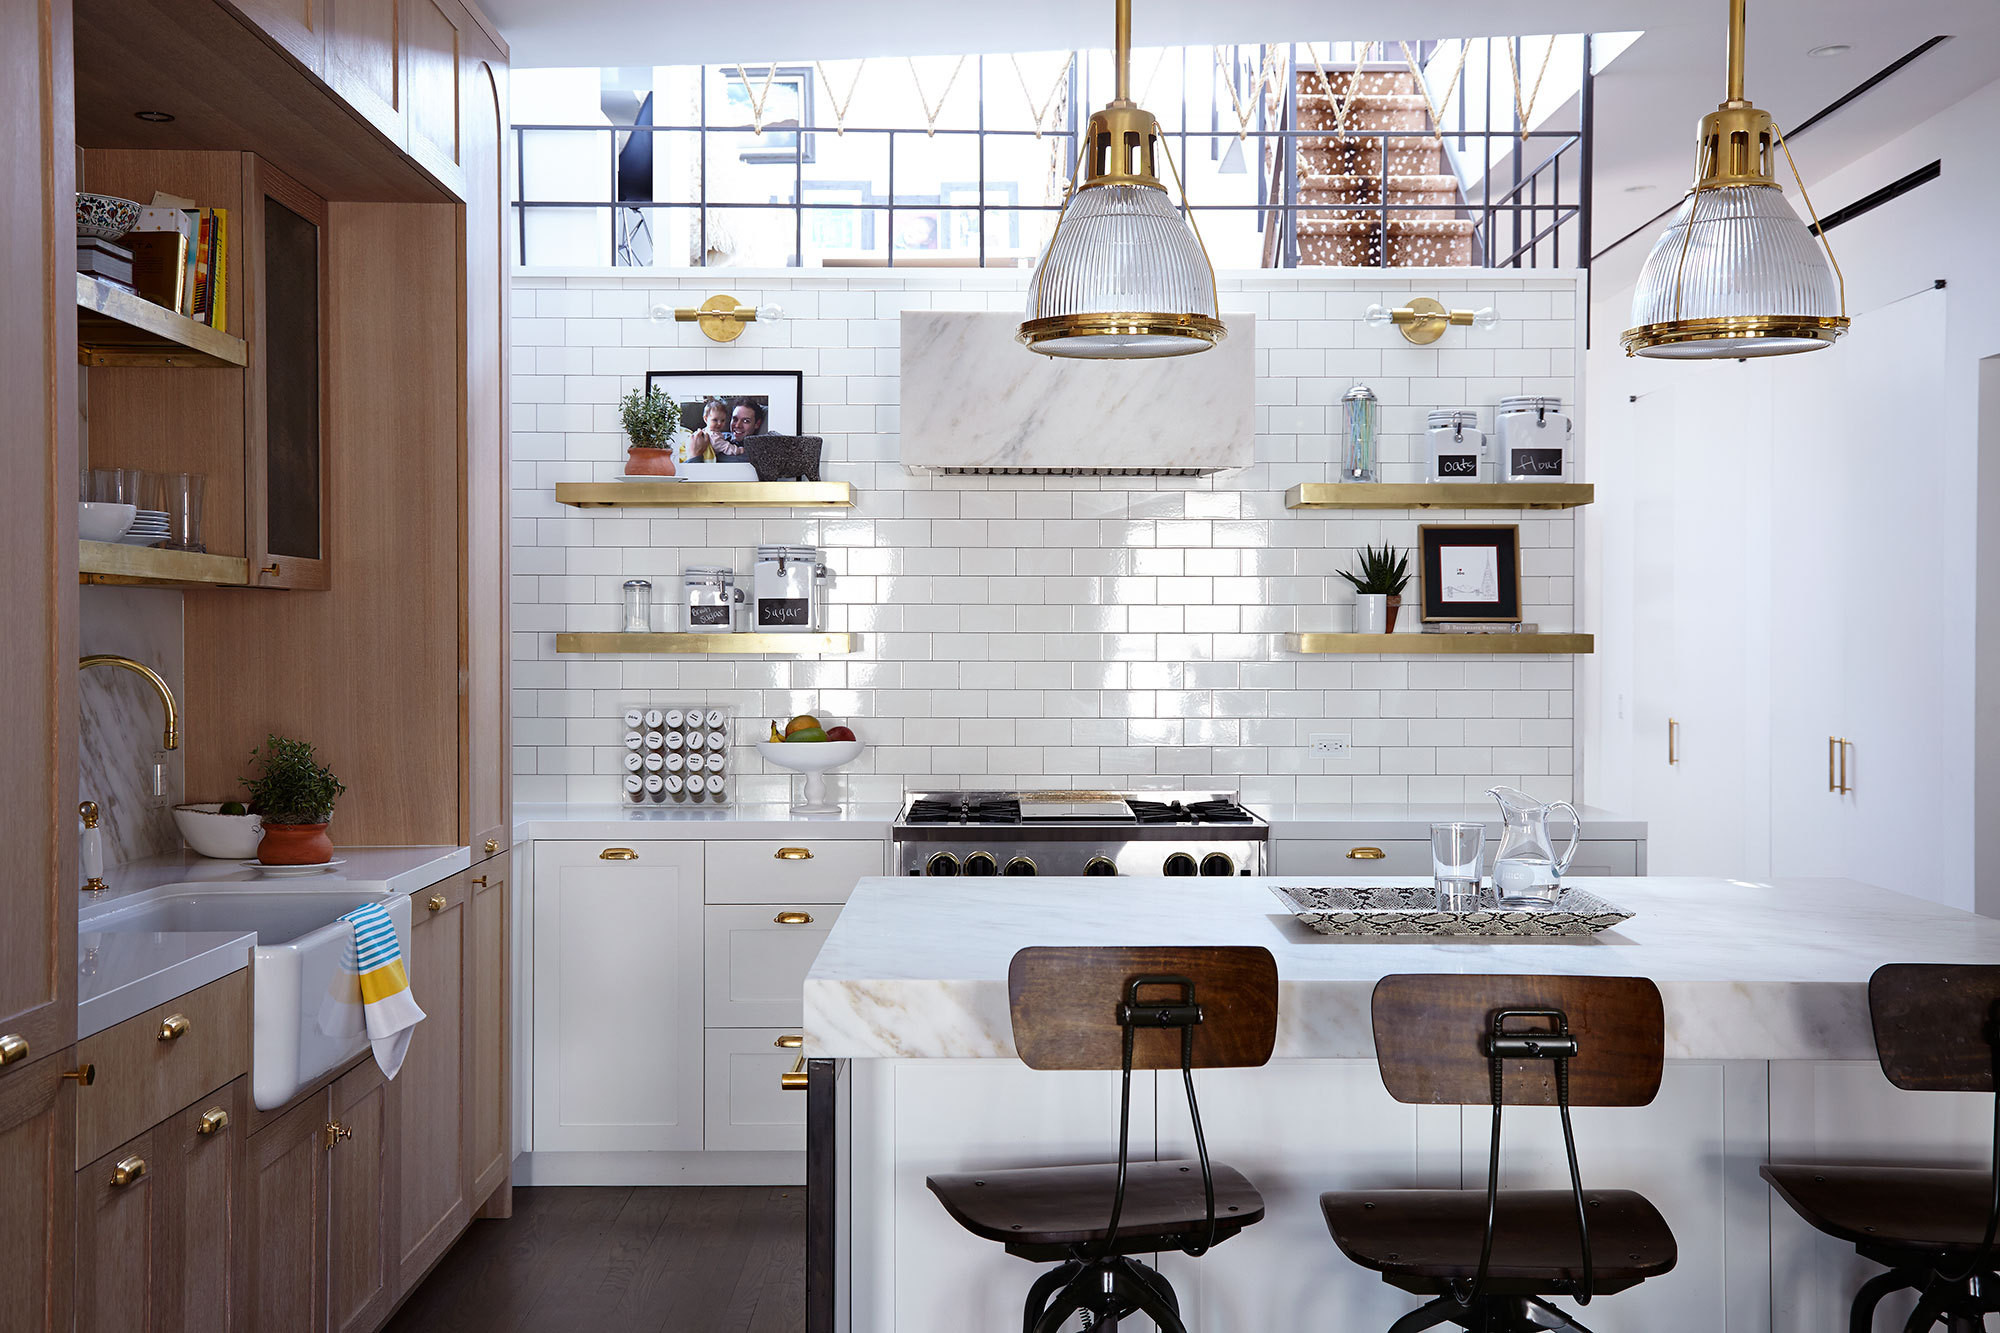 City Home Kitchen Form Meets Function In A Sophisticated Family Home  Home Tour  Lonny